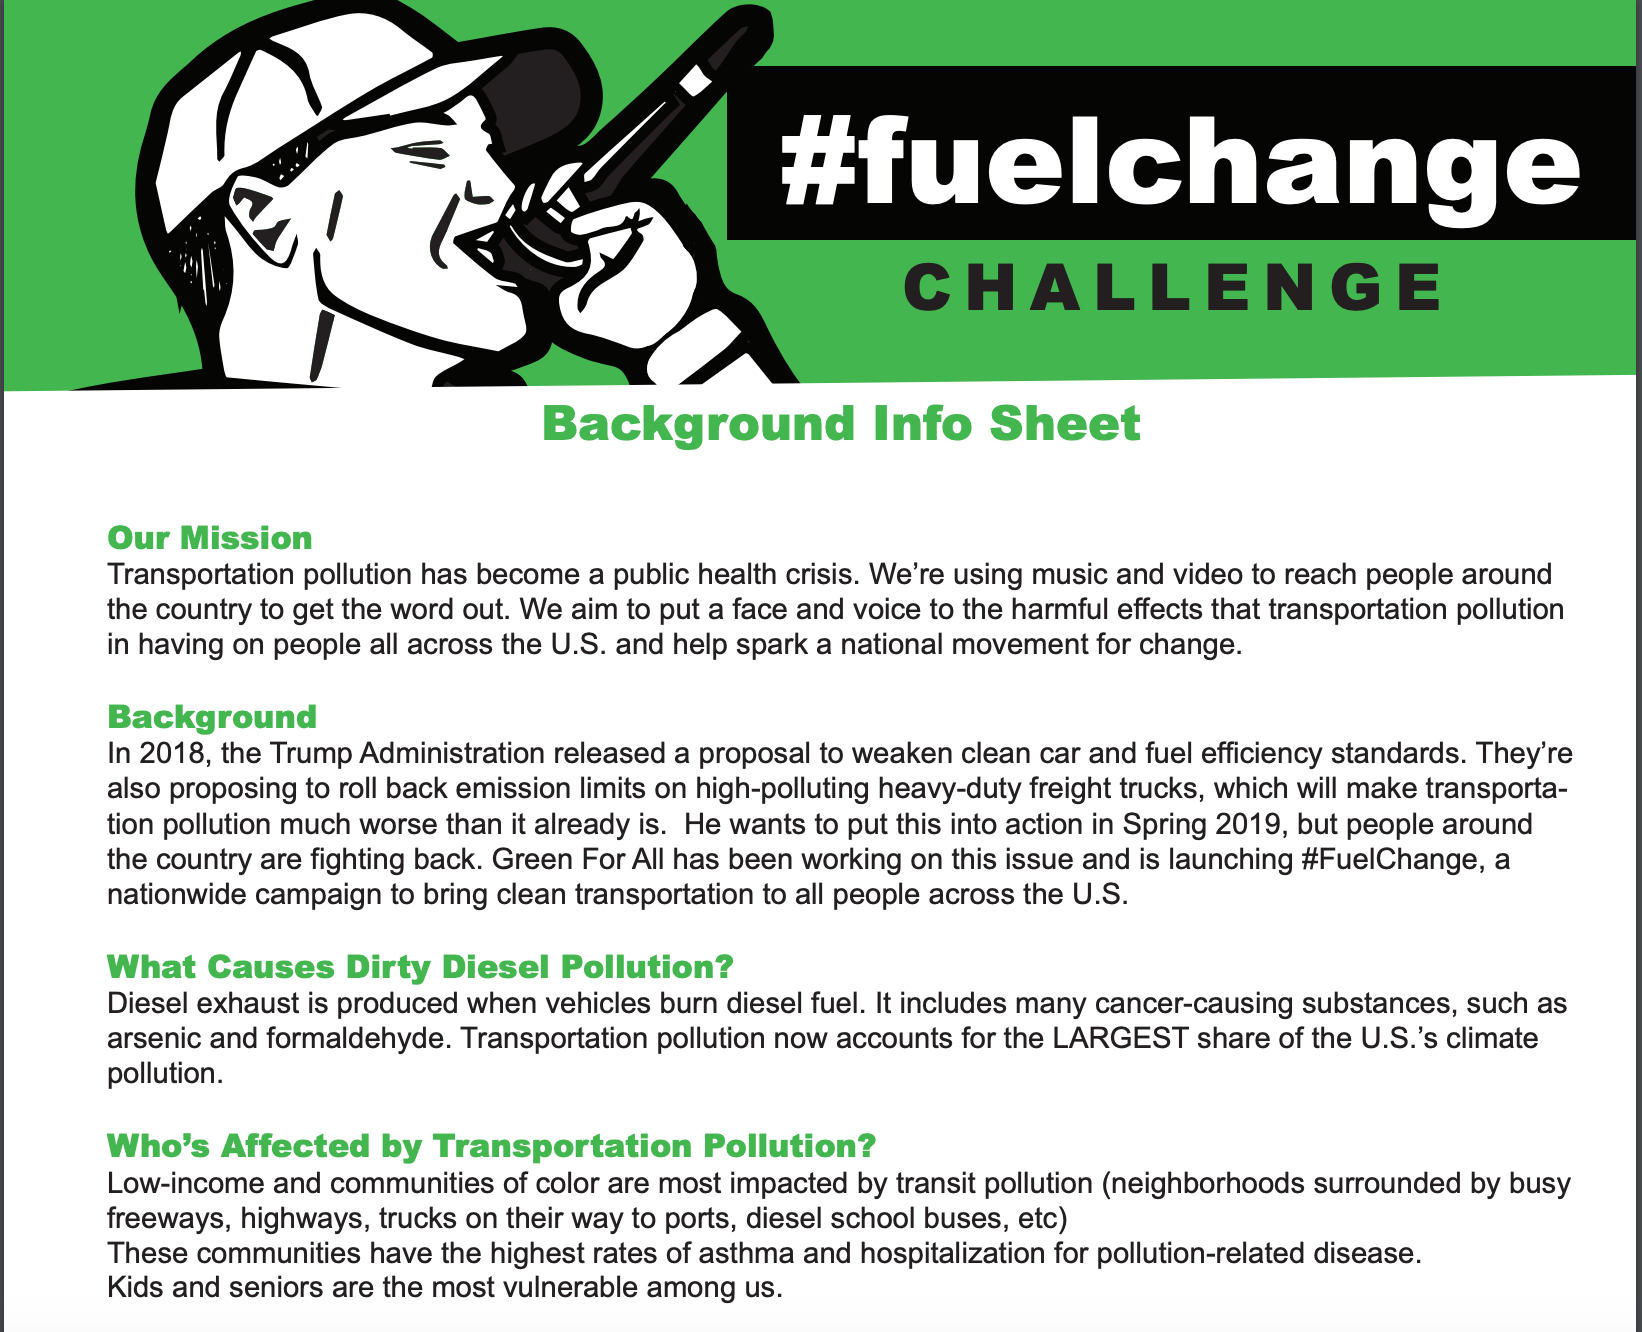 Fuel Change Challenge Background Information